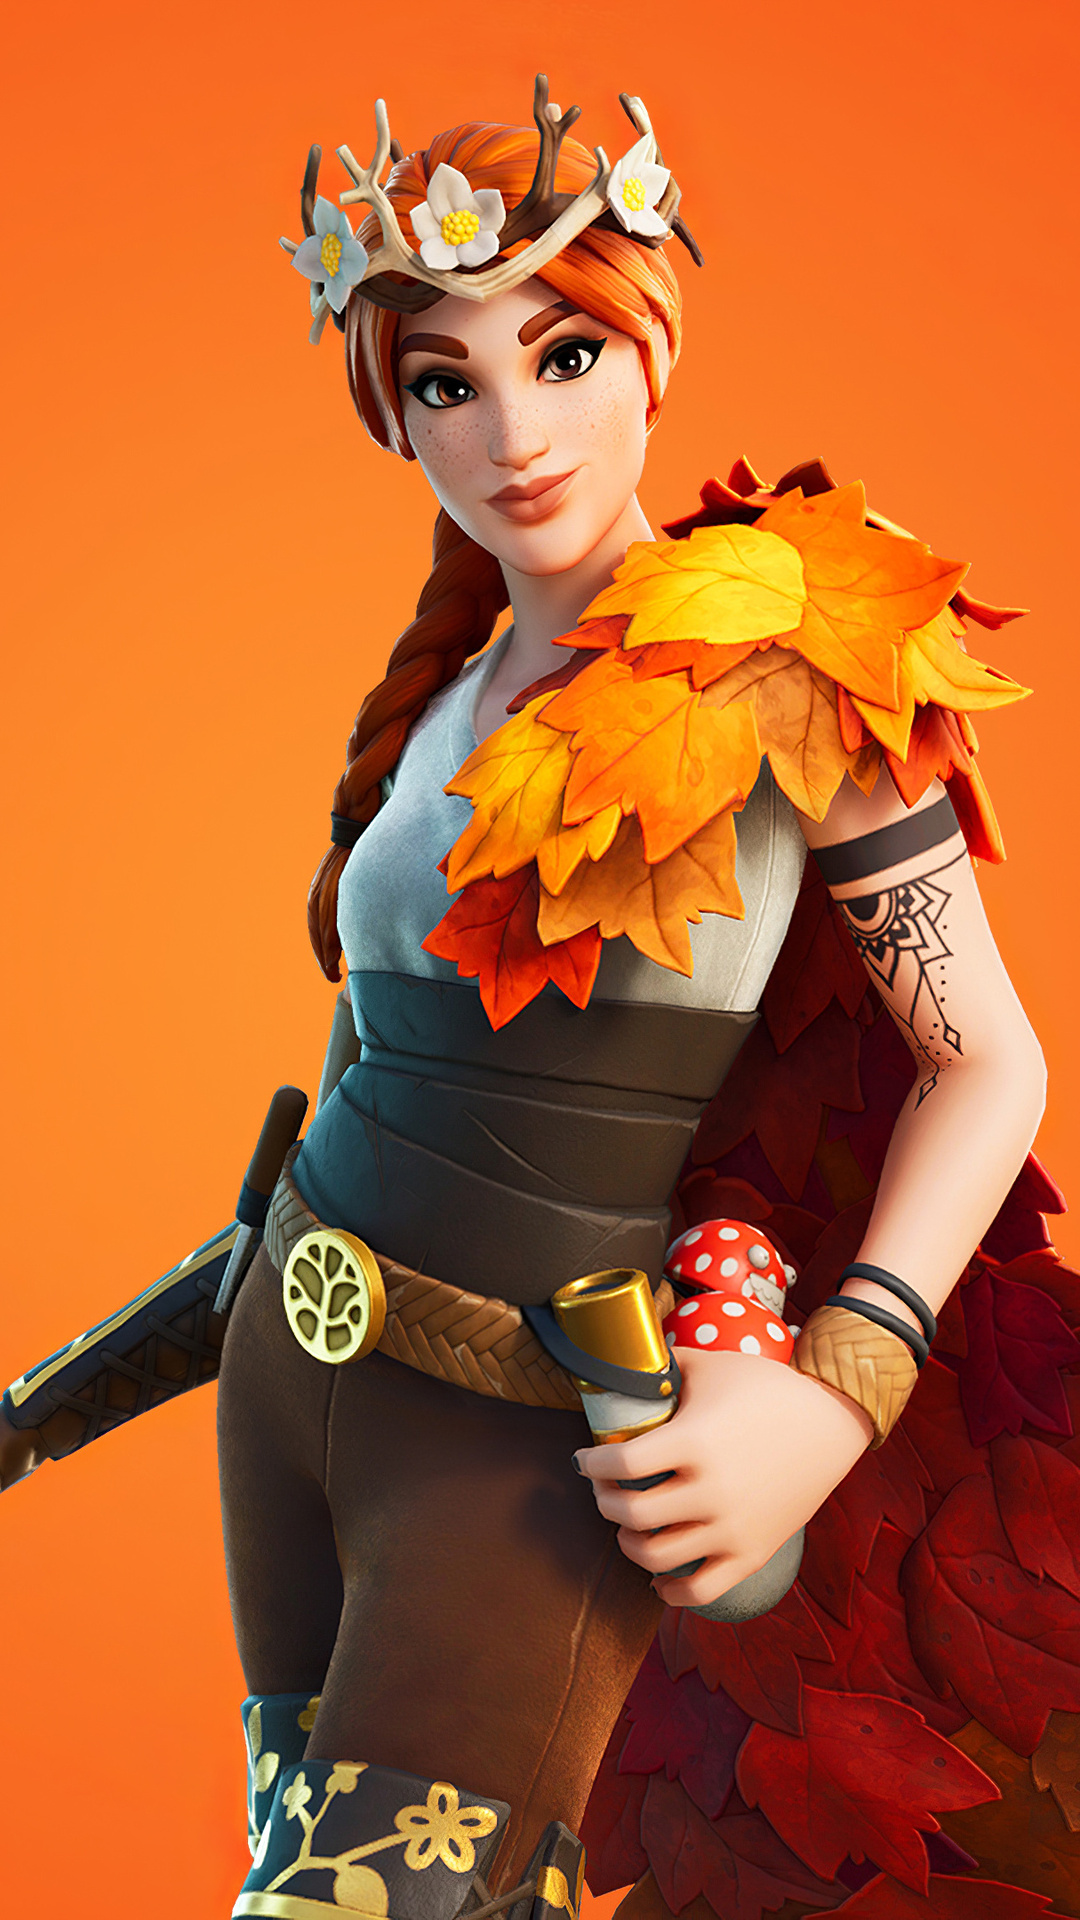 fornite-autumn-queen-outfit-4k-t9.jpg